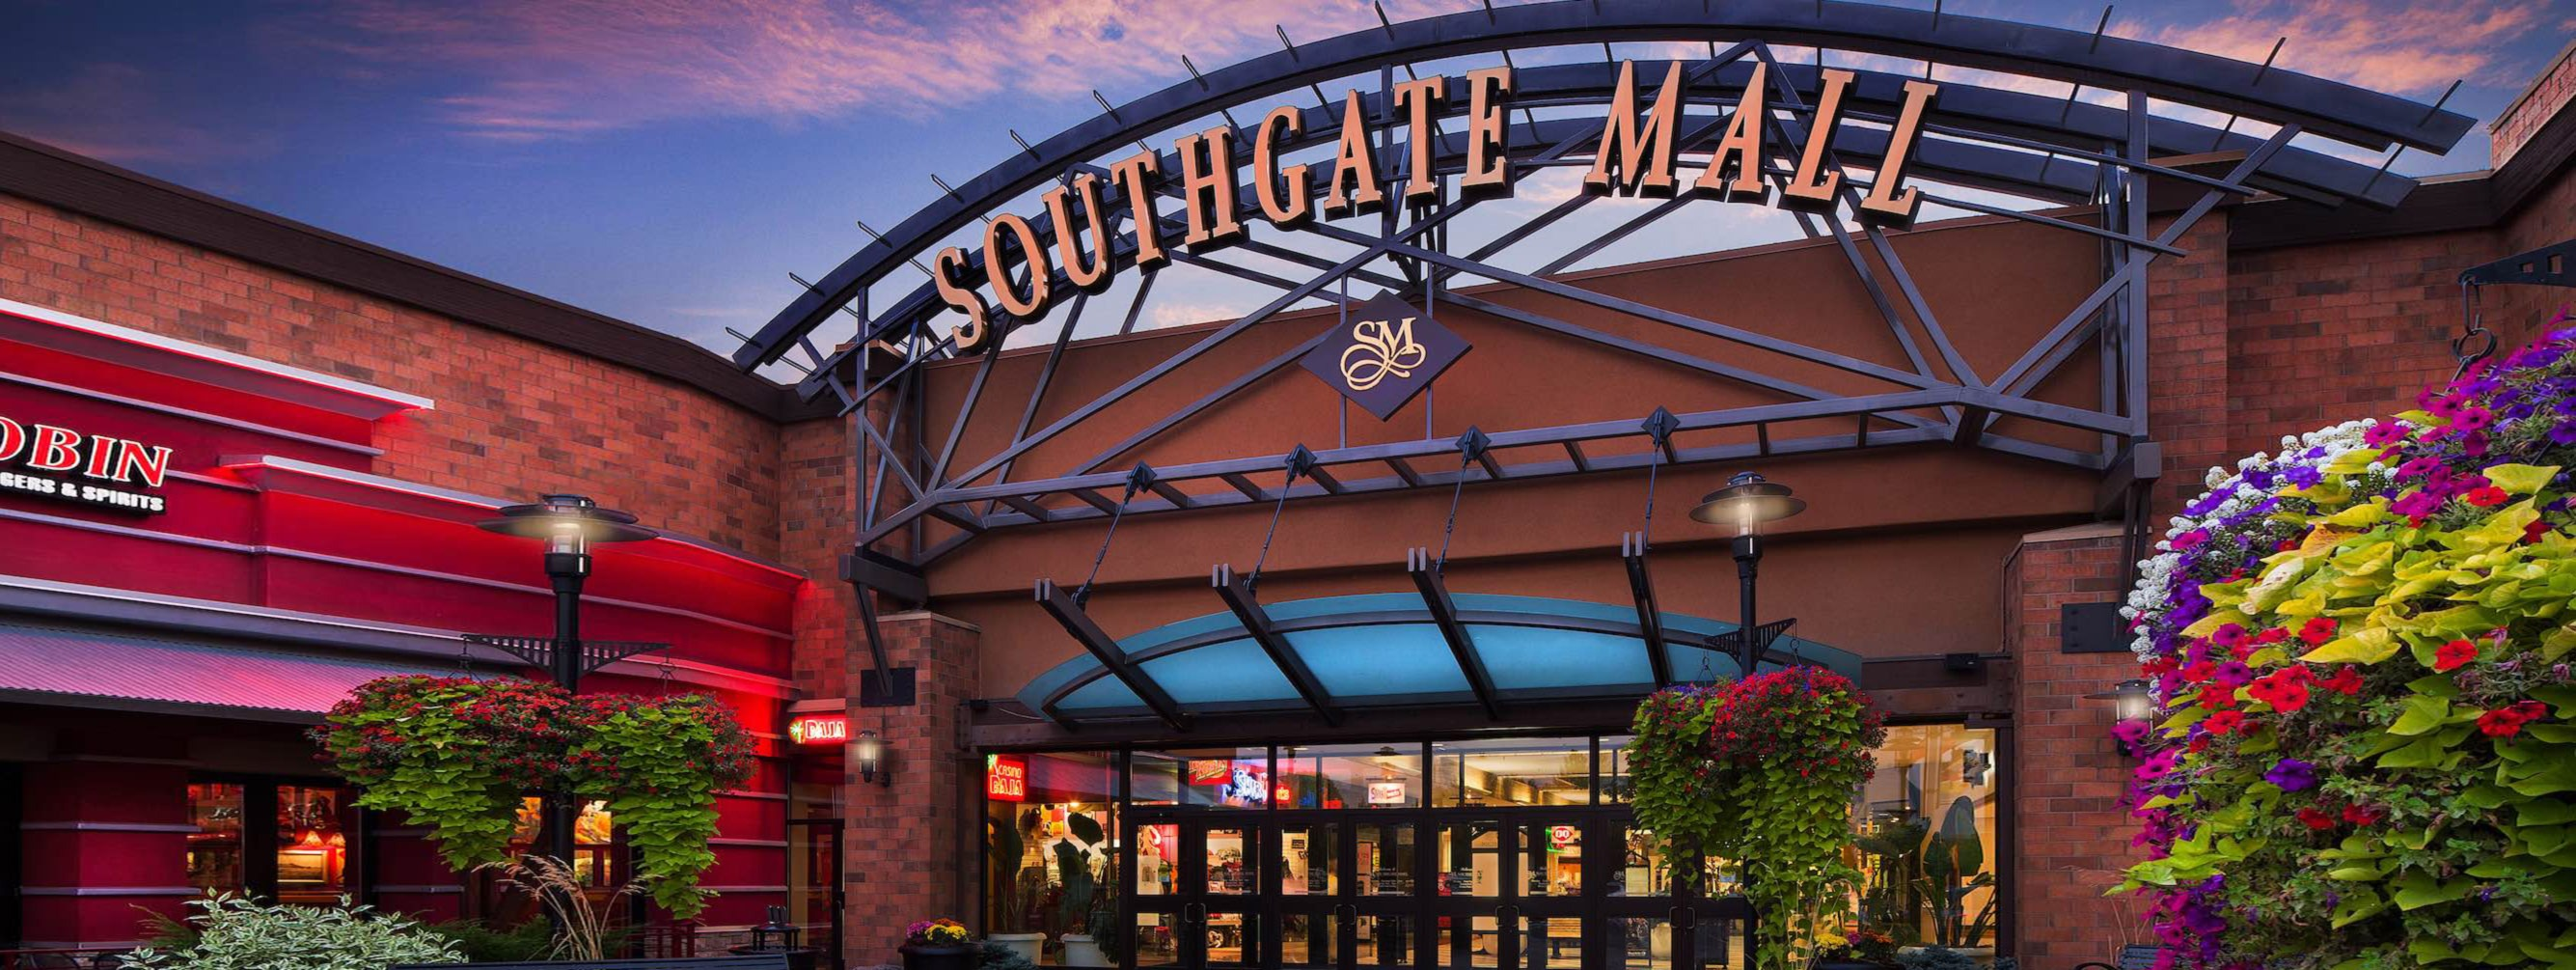 Southgate Mall: Missoula's One-Stop Shop